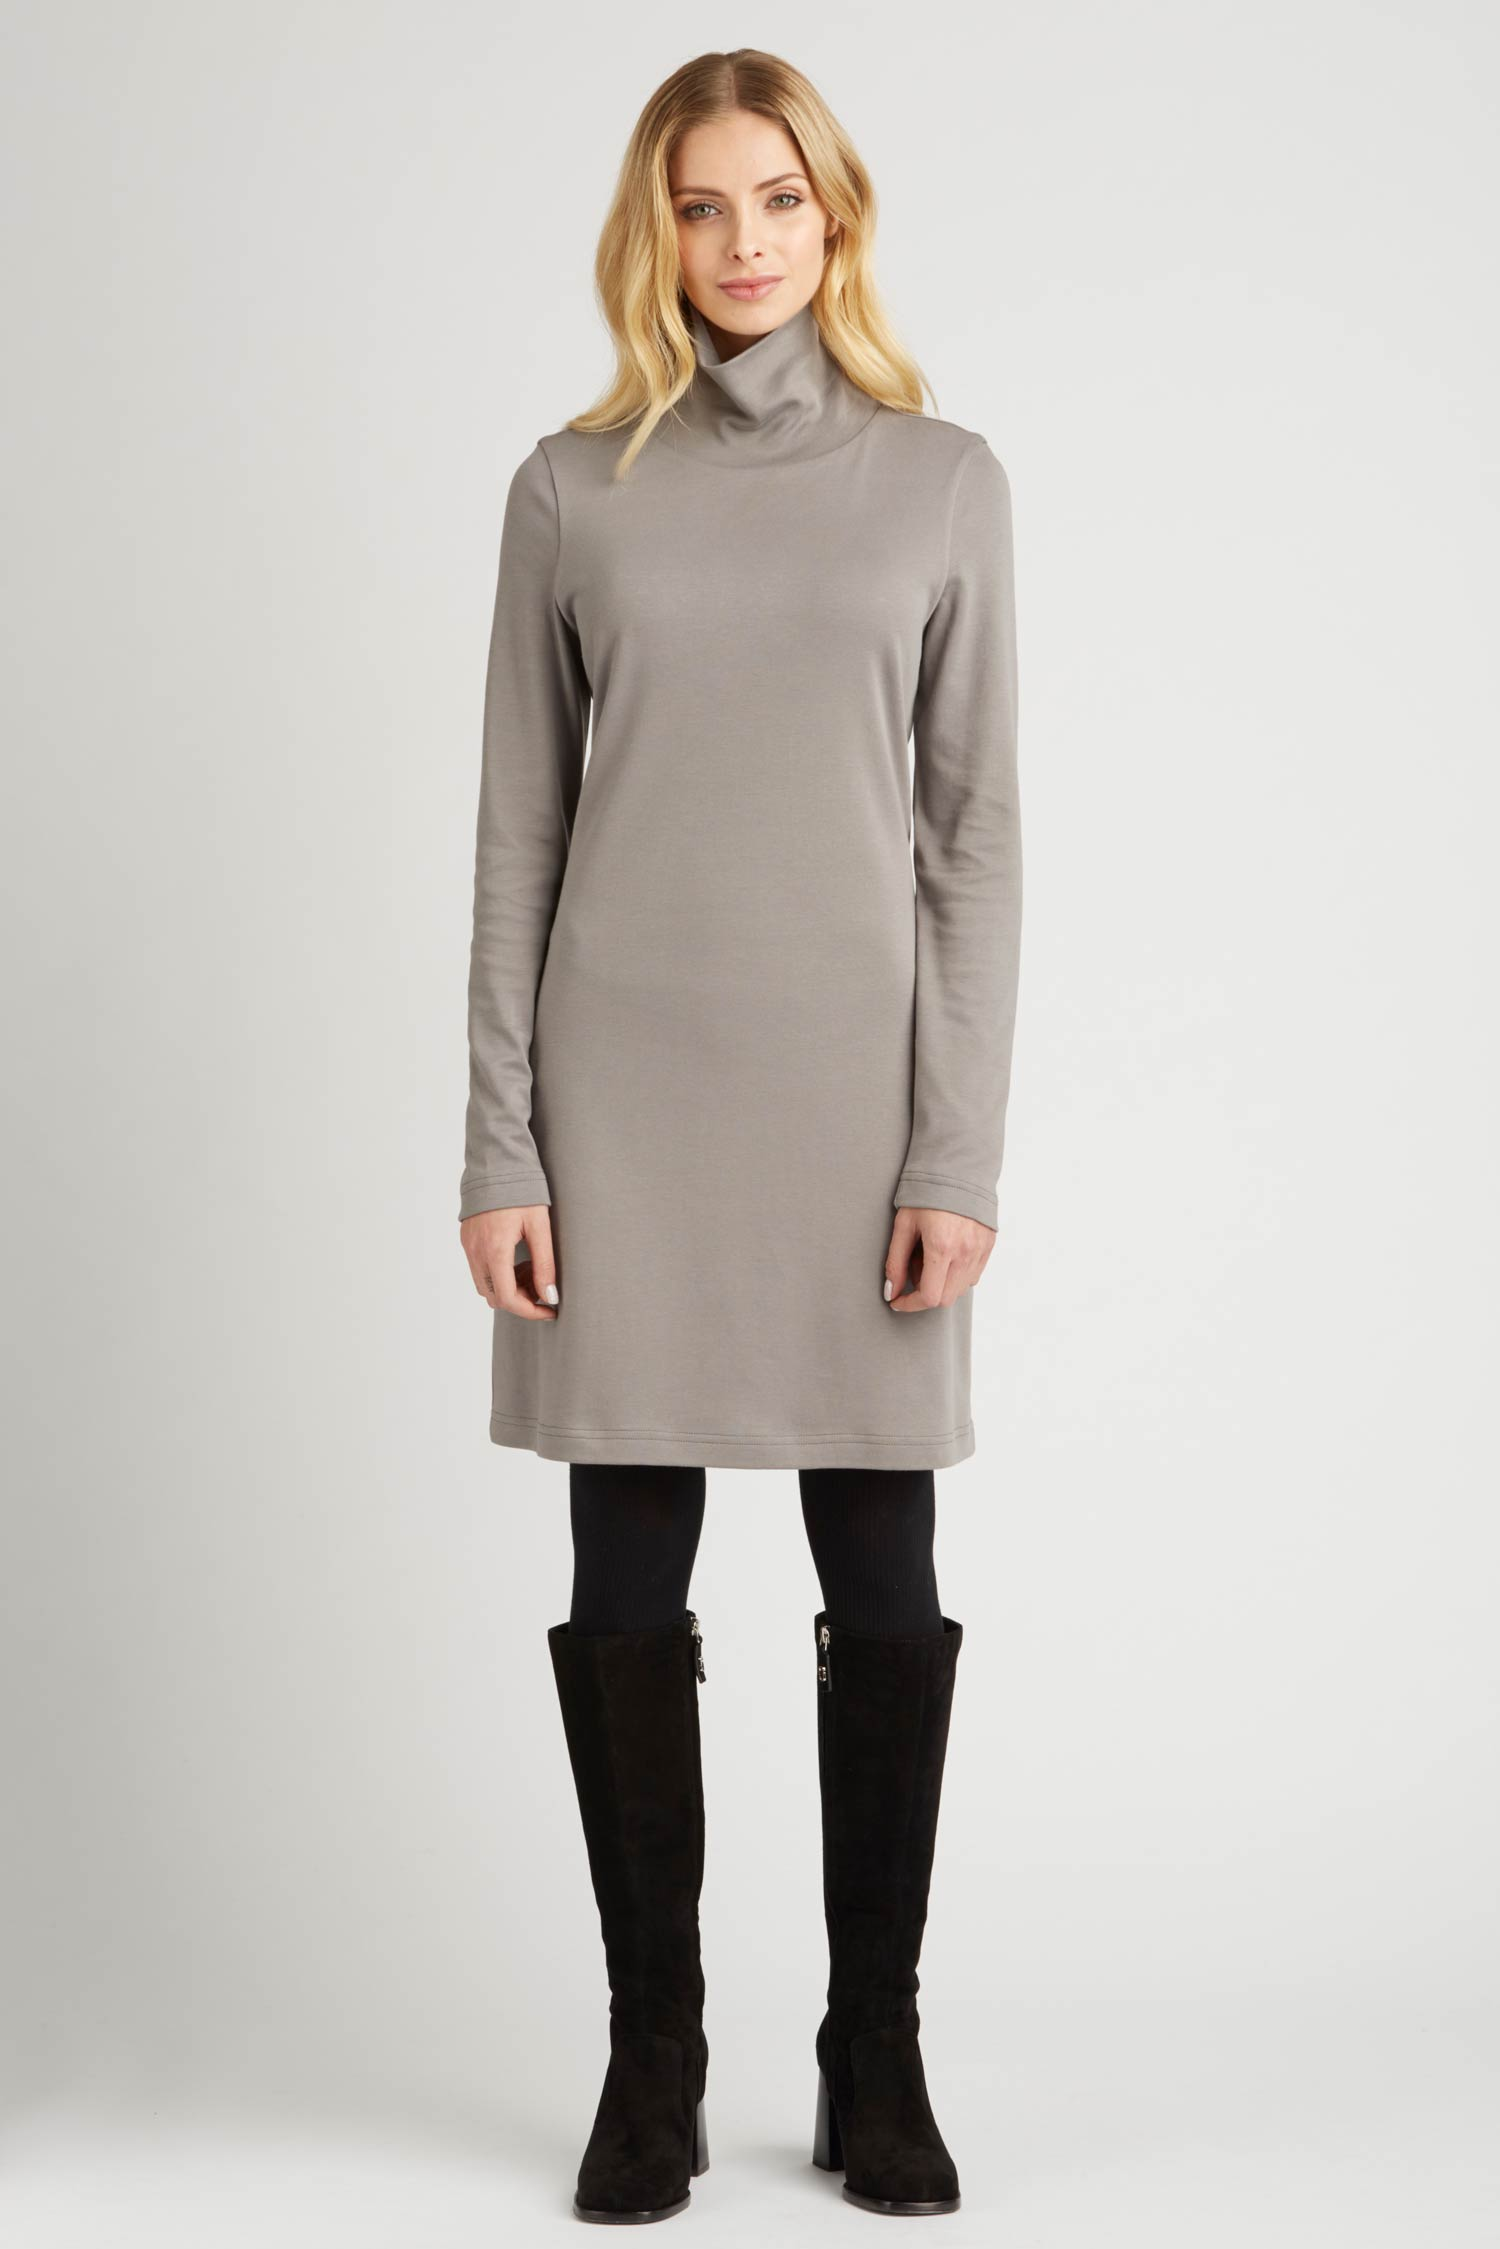 Womens Turtleneck Dress in Gray | Organic Cotton Clothing